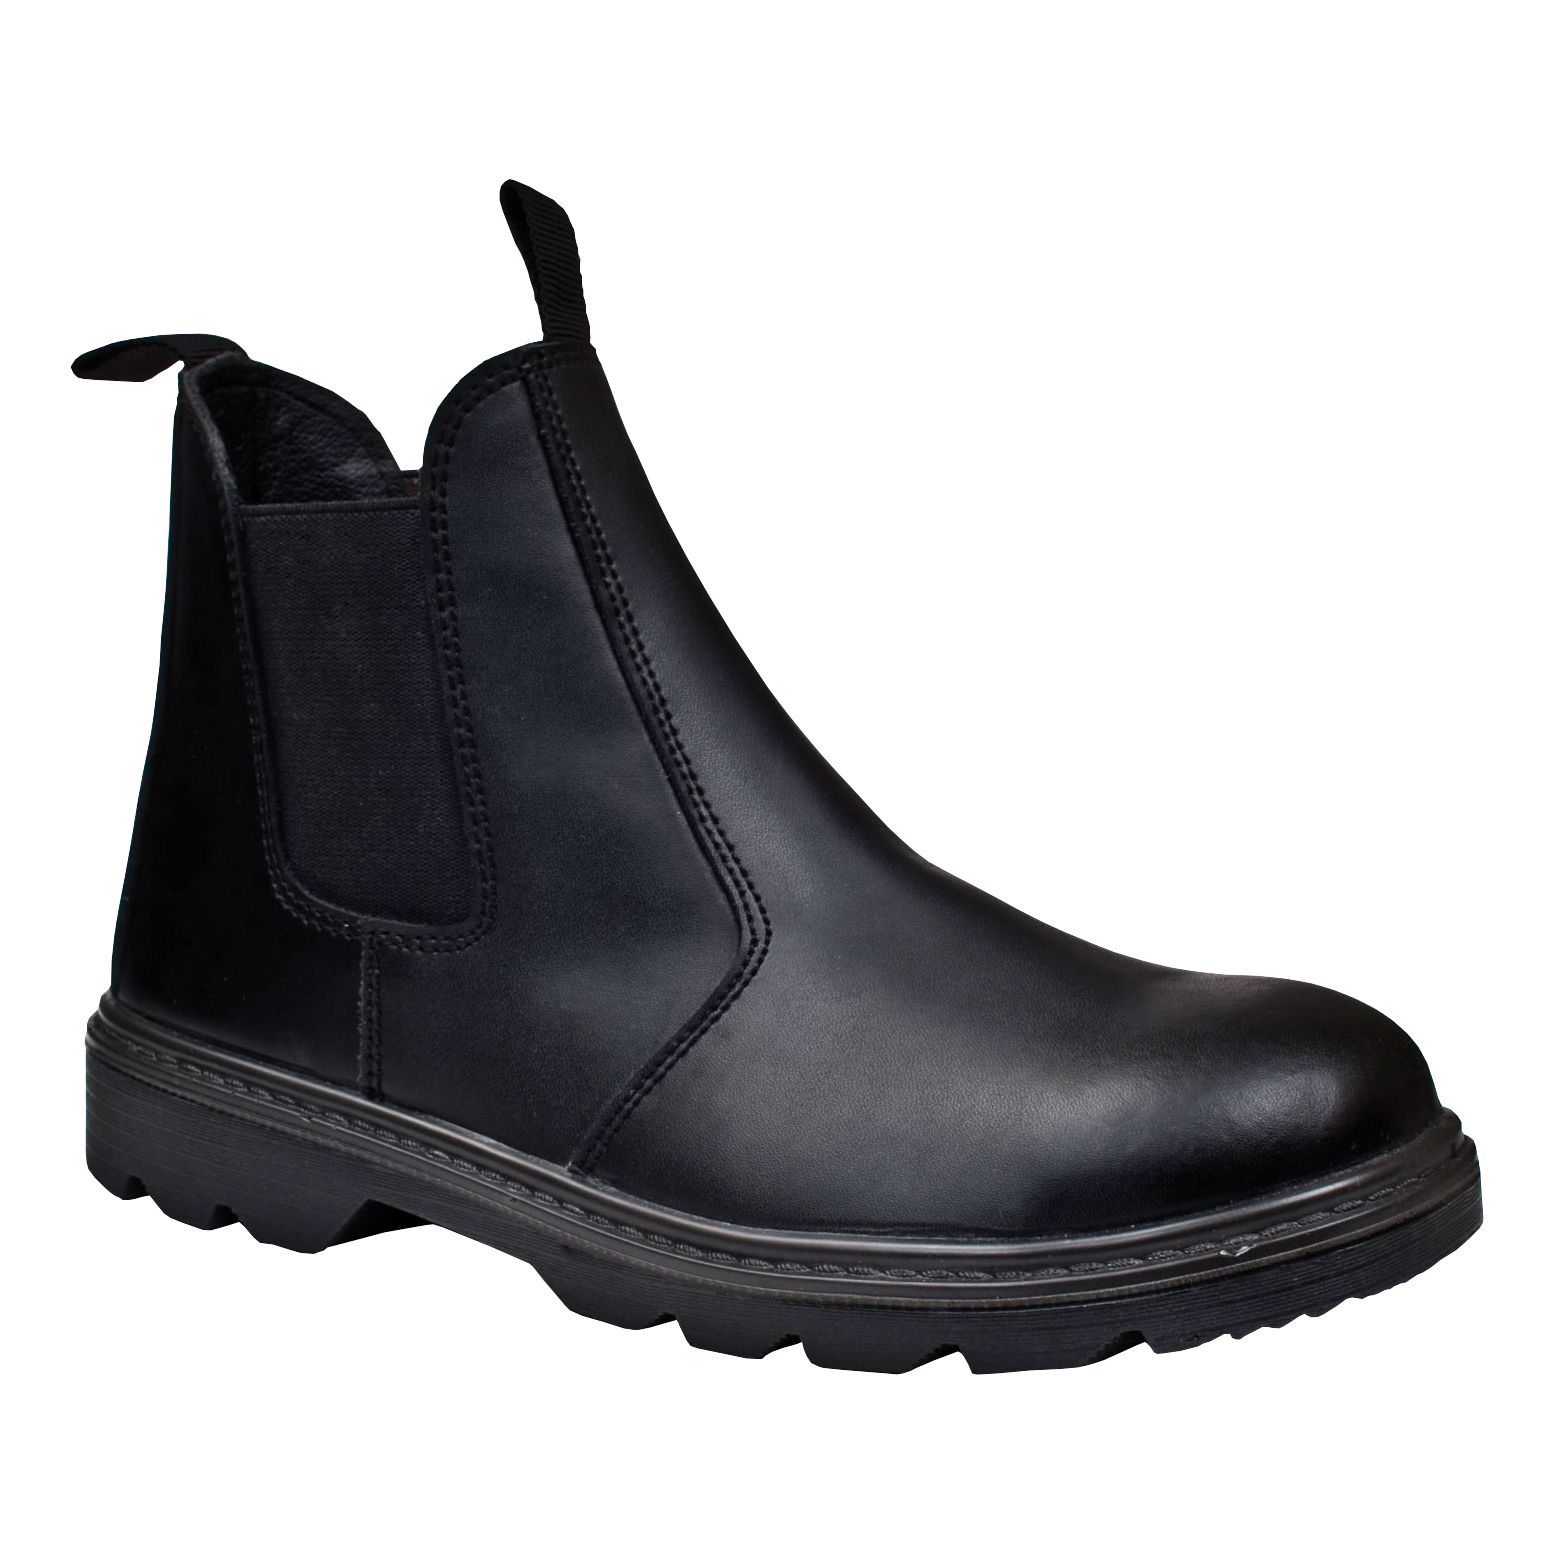 Footwear Click Footwear Dealer Boot PU/Leather Steel Toecap Size 12 Black Ref CF16BL12 *Approx 3 Day Leadtime*